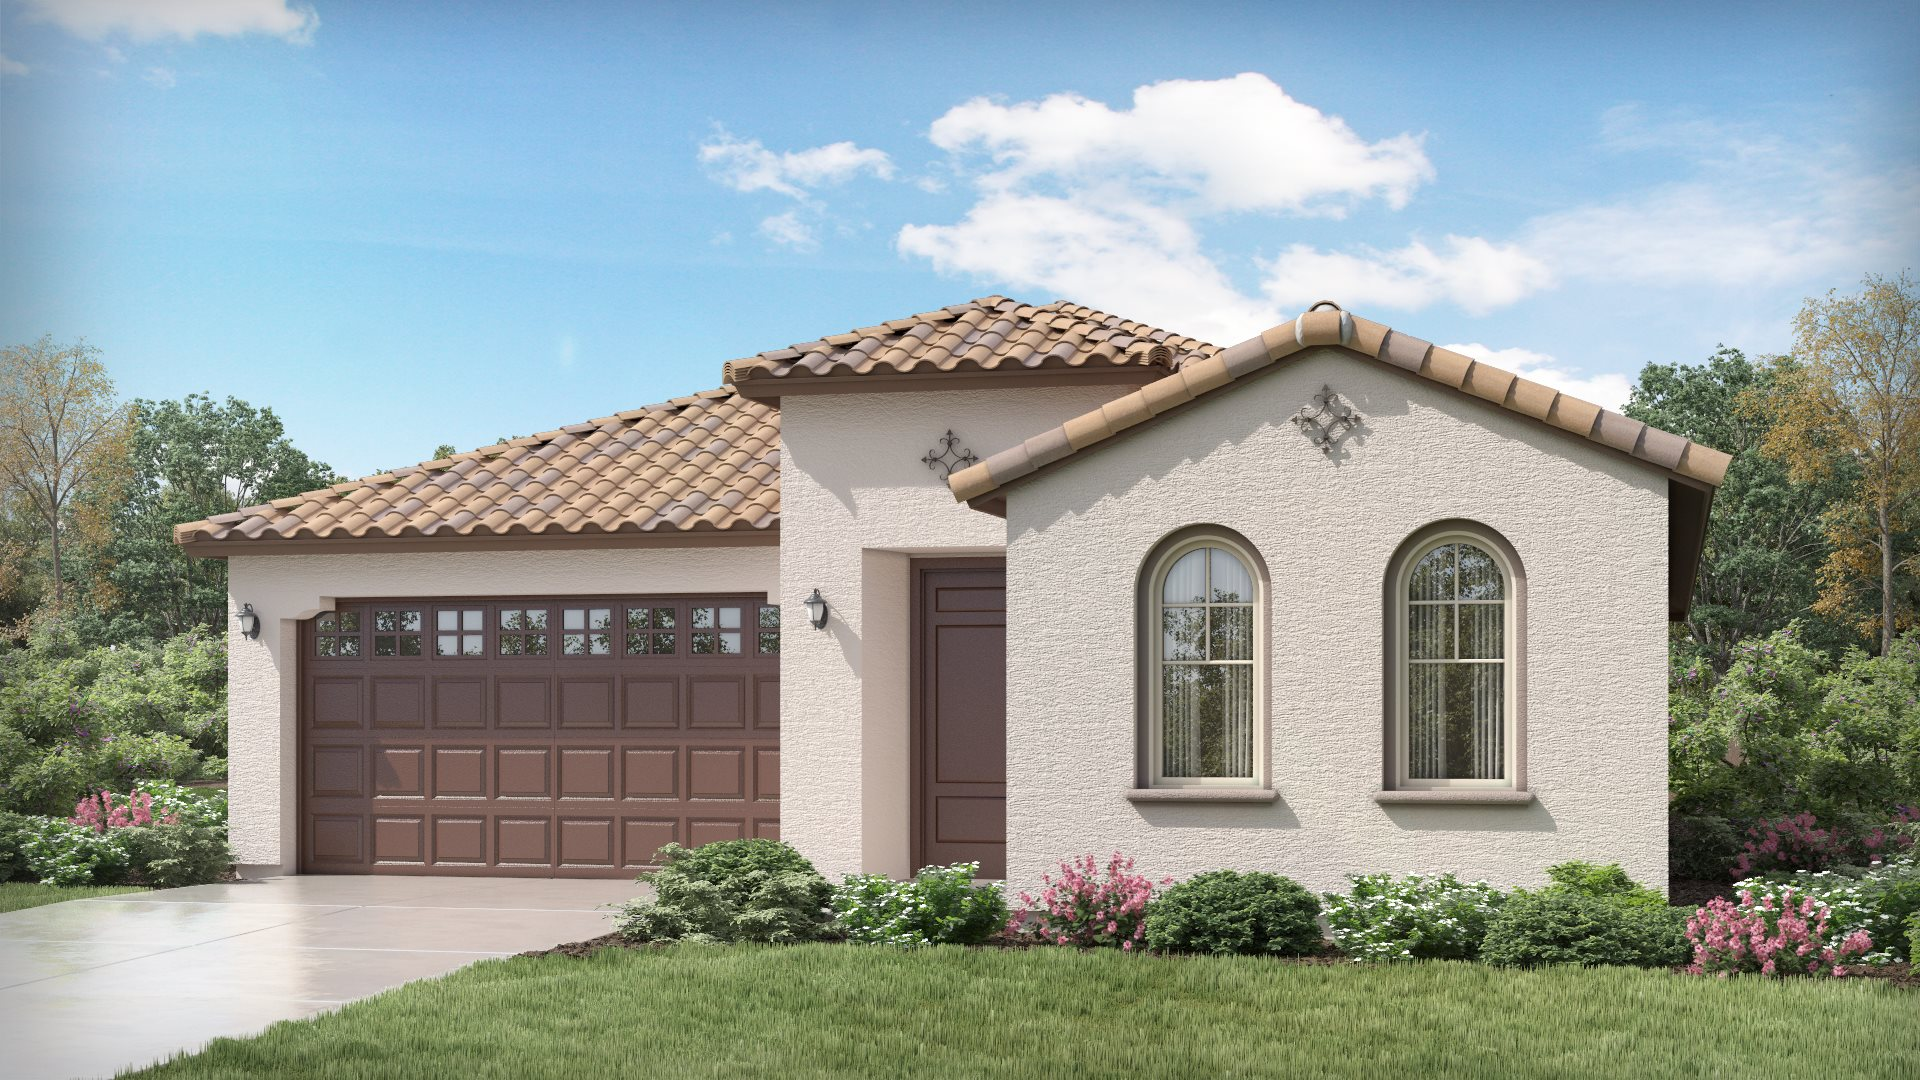 Sage Plan 402 A Spanish Colonial